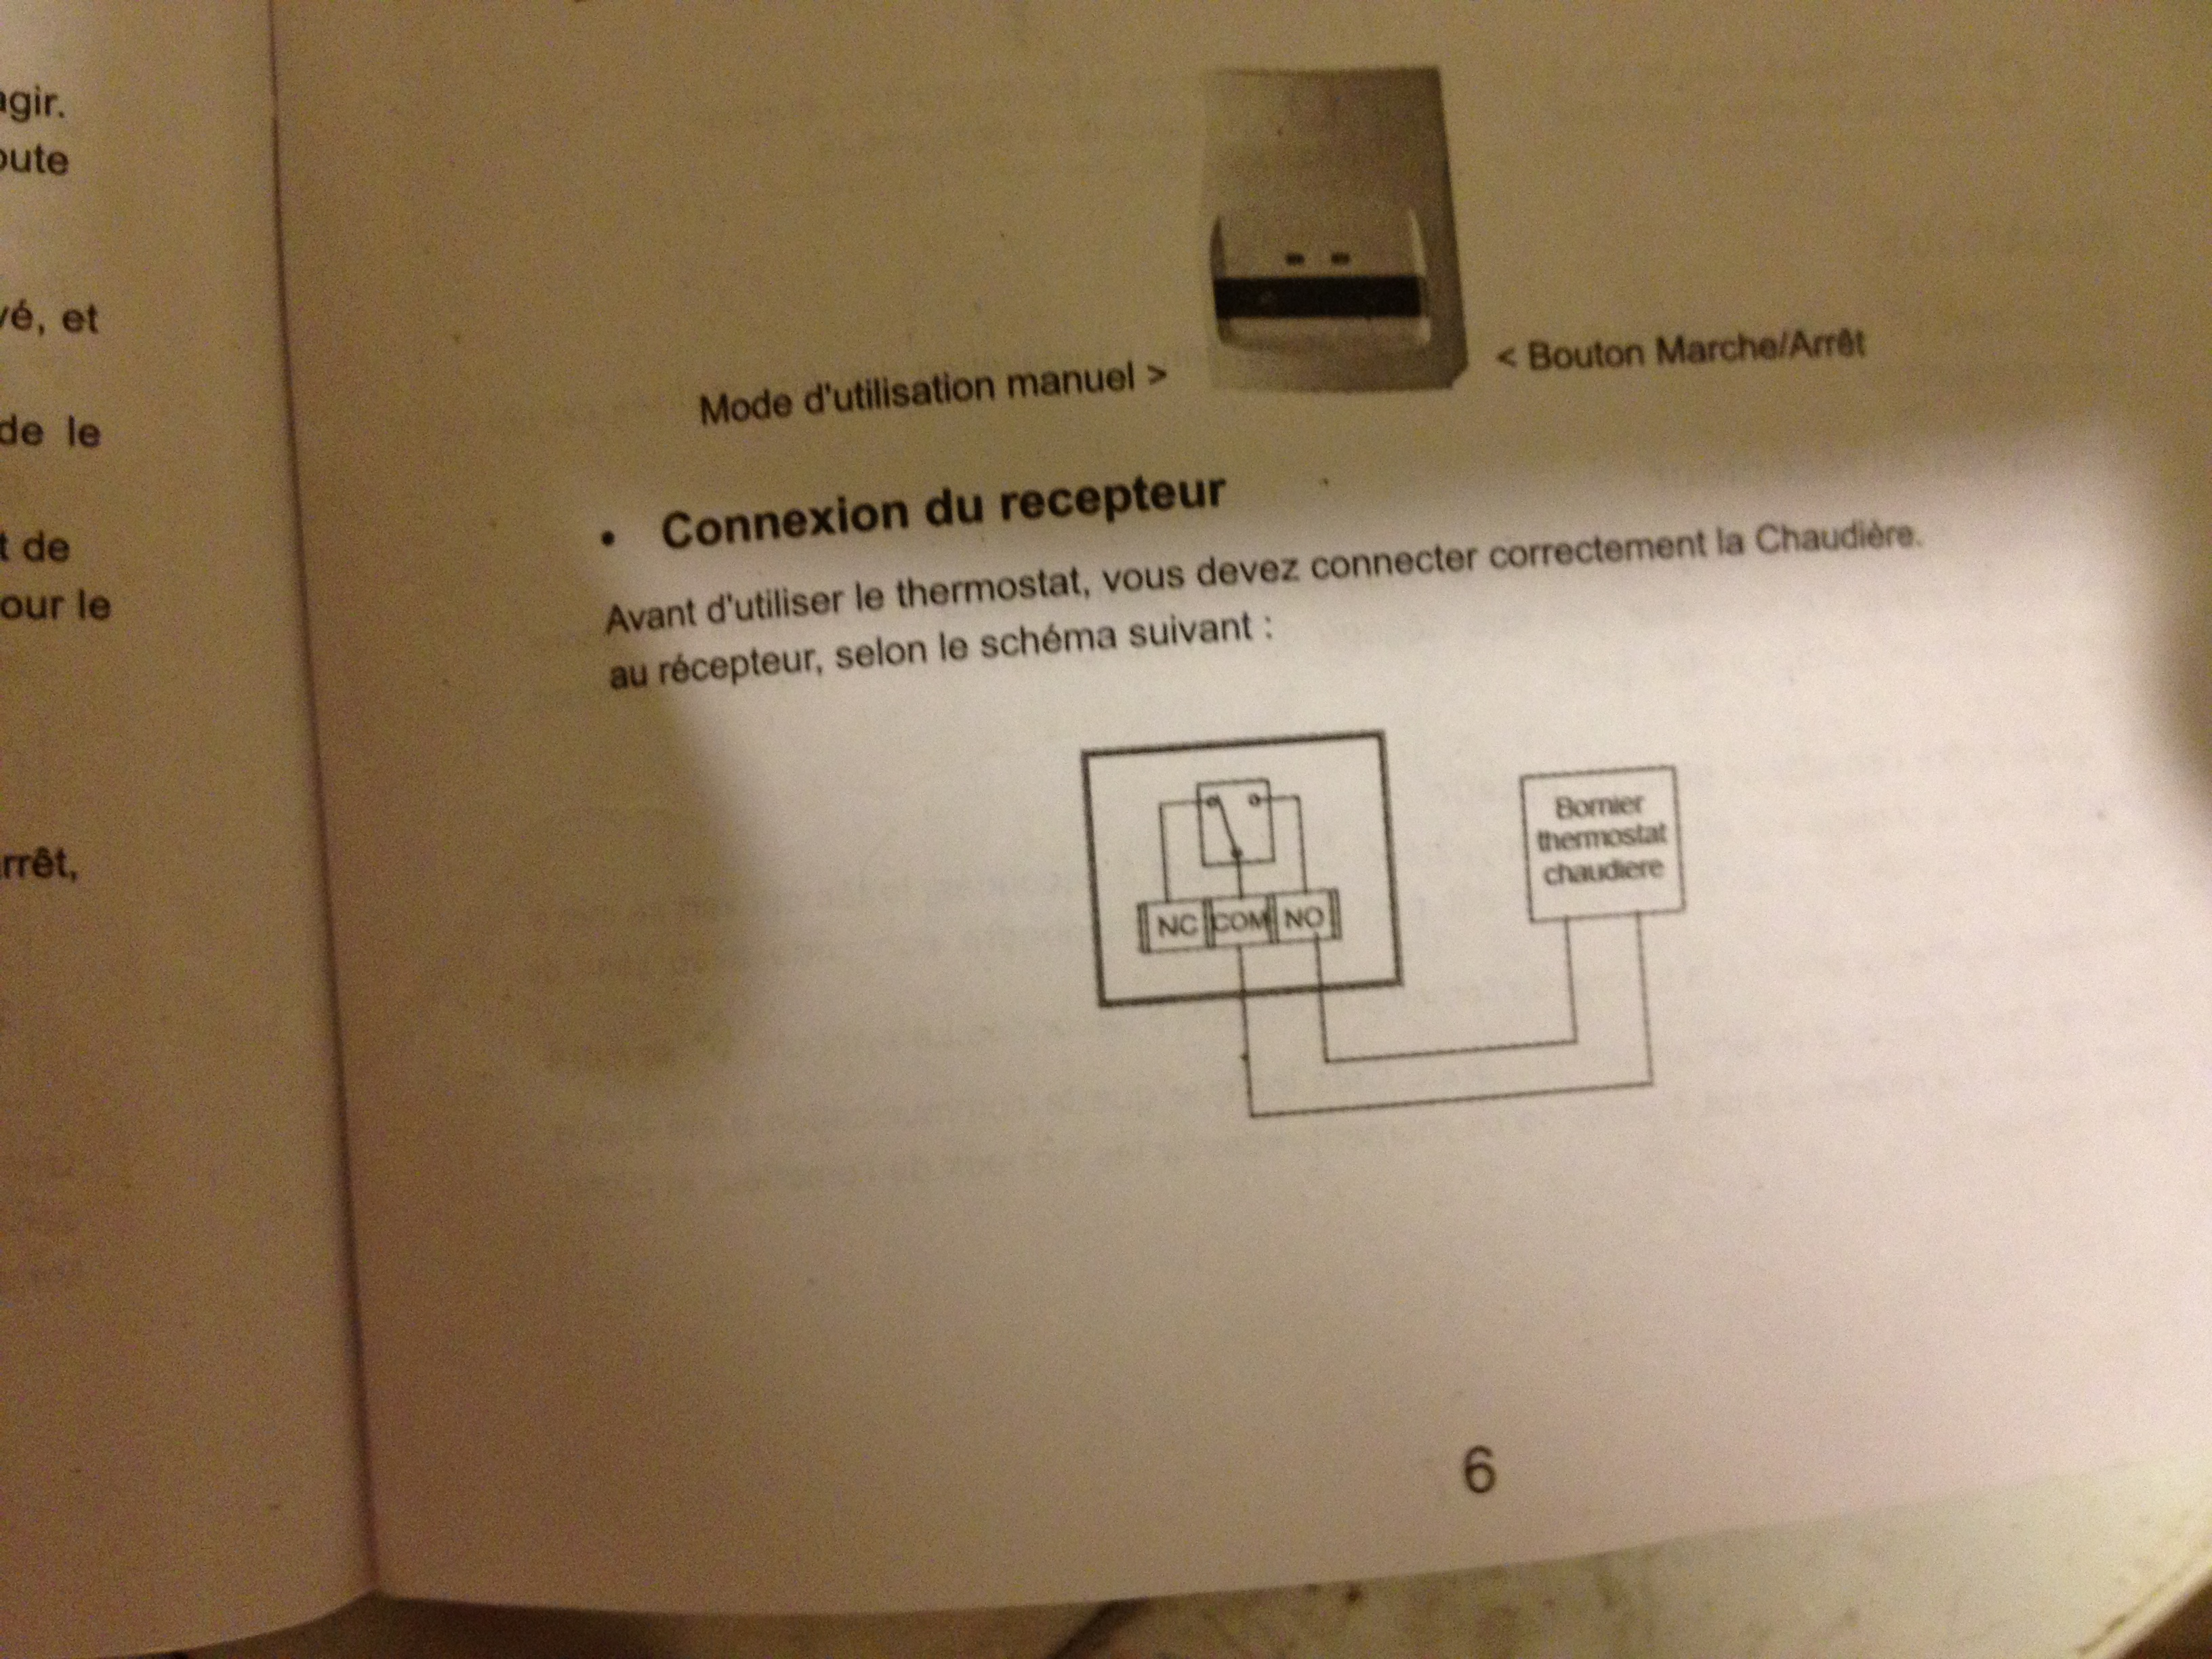 Img 0405 jpg - Probleme thermostat chaudiere ...